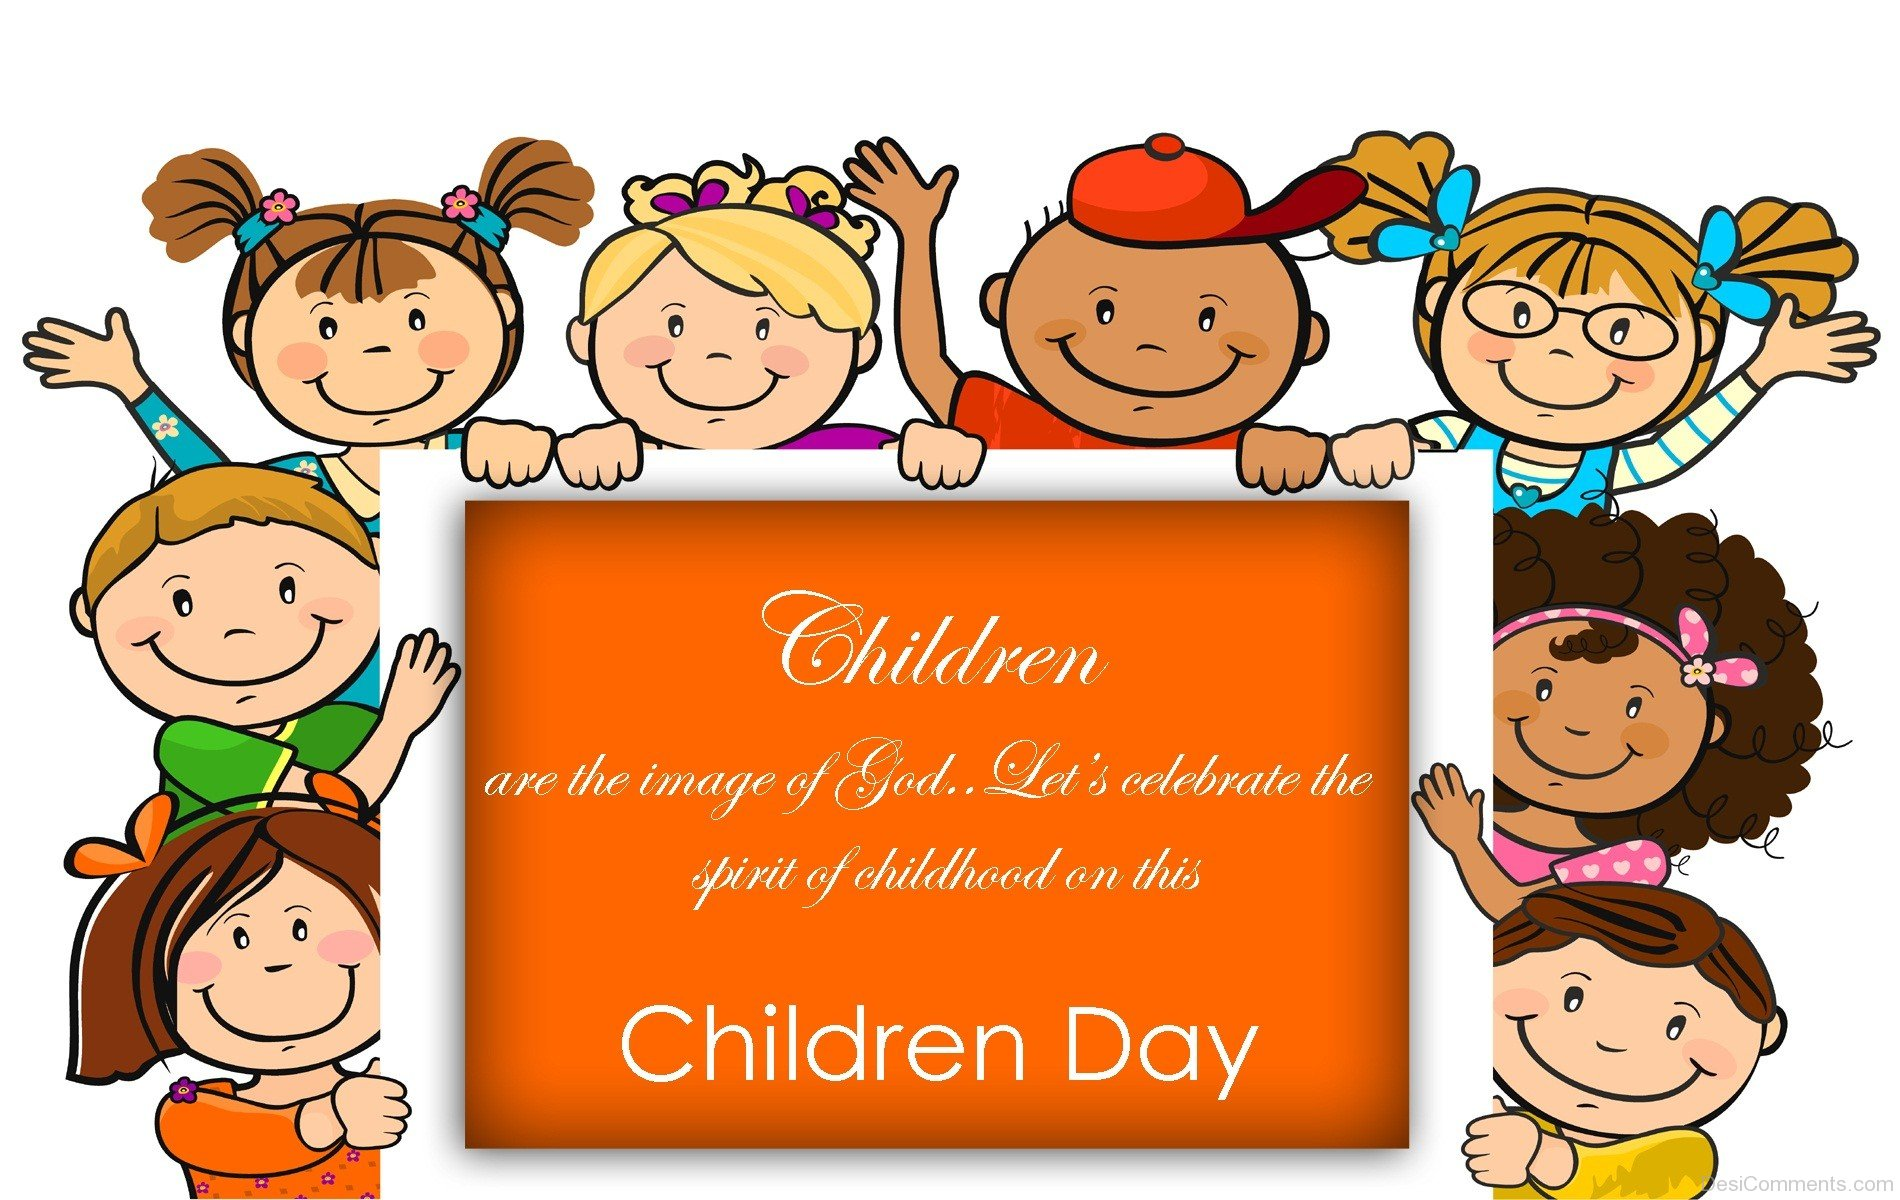 childrens day Children's day was established to honor and promote the welfare of the world's children universally it is celebrated on november 20th, but many different countries around the world have.